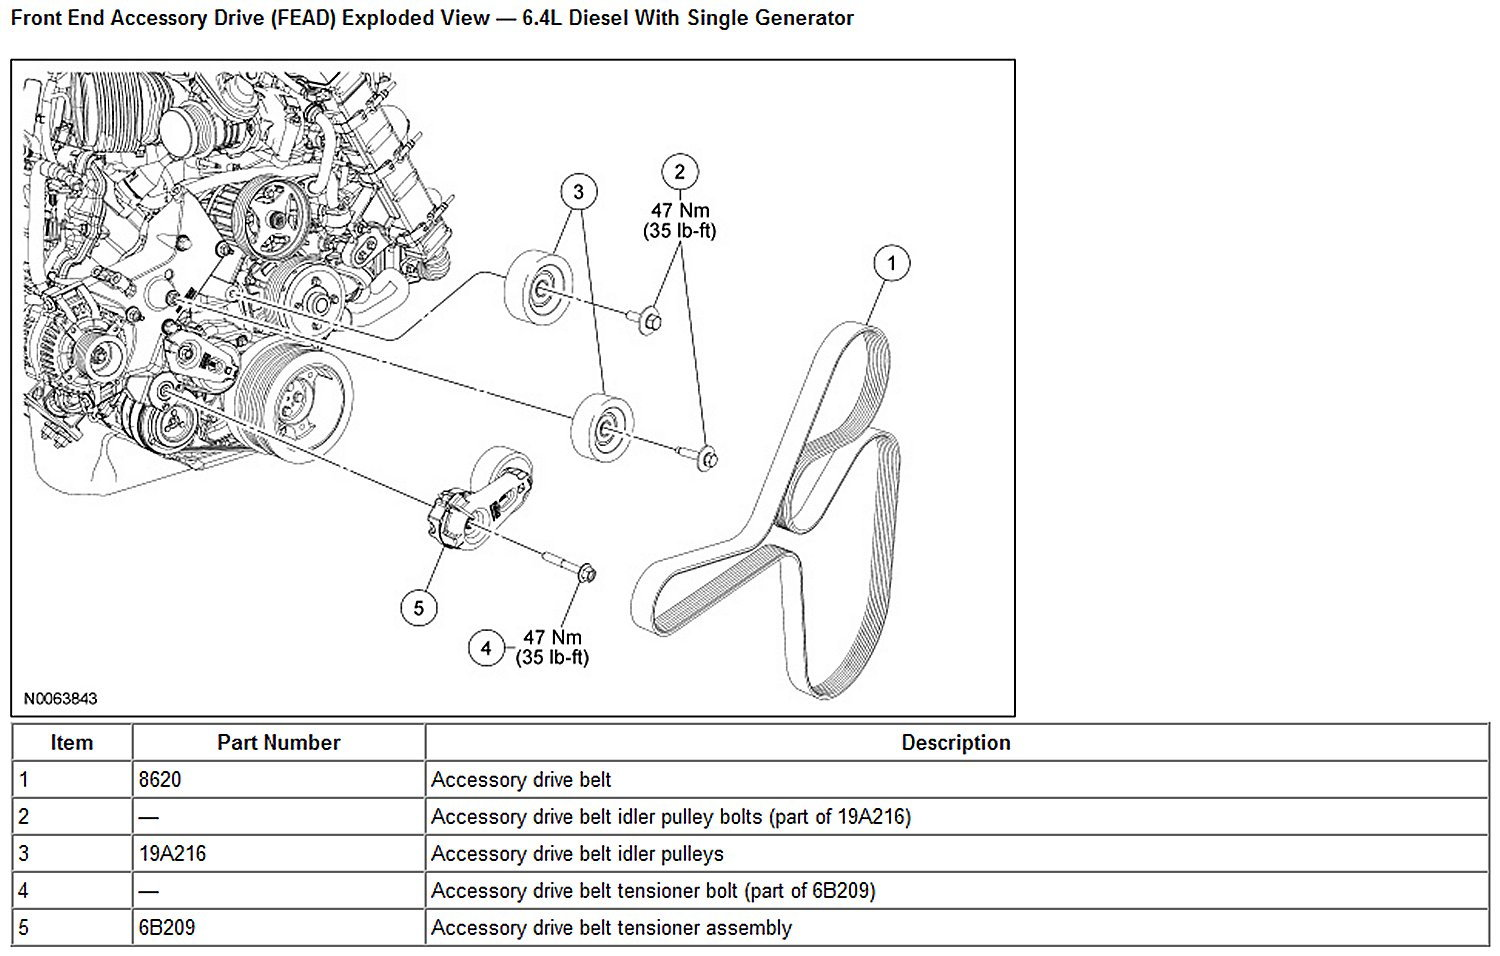 hight resolution of ford f150 f250 how to replace idler and tension pulleys ford trucks 2004 f150 5 4 engine diagram 2005 4 6l ford f 150 engine pulley diagram